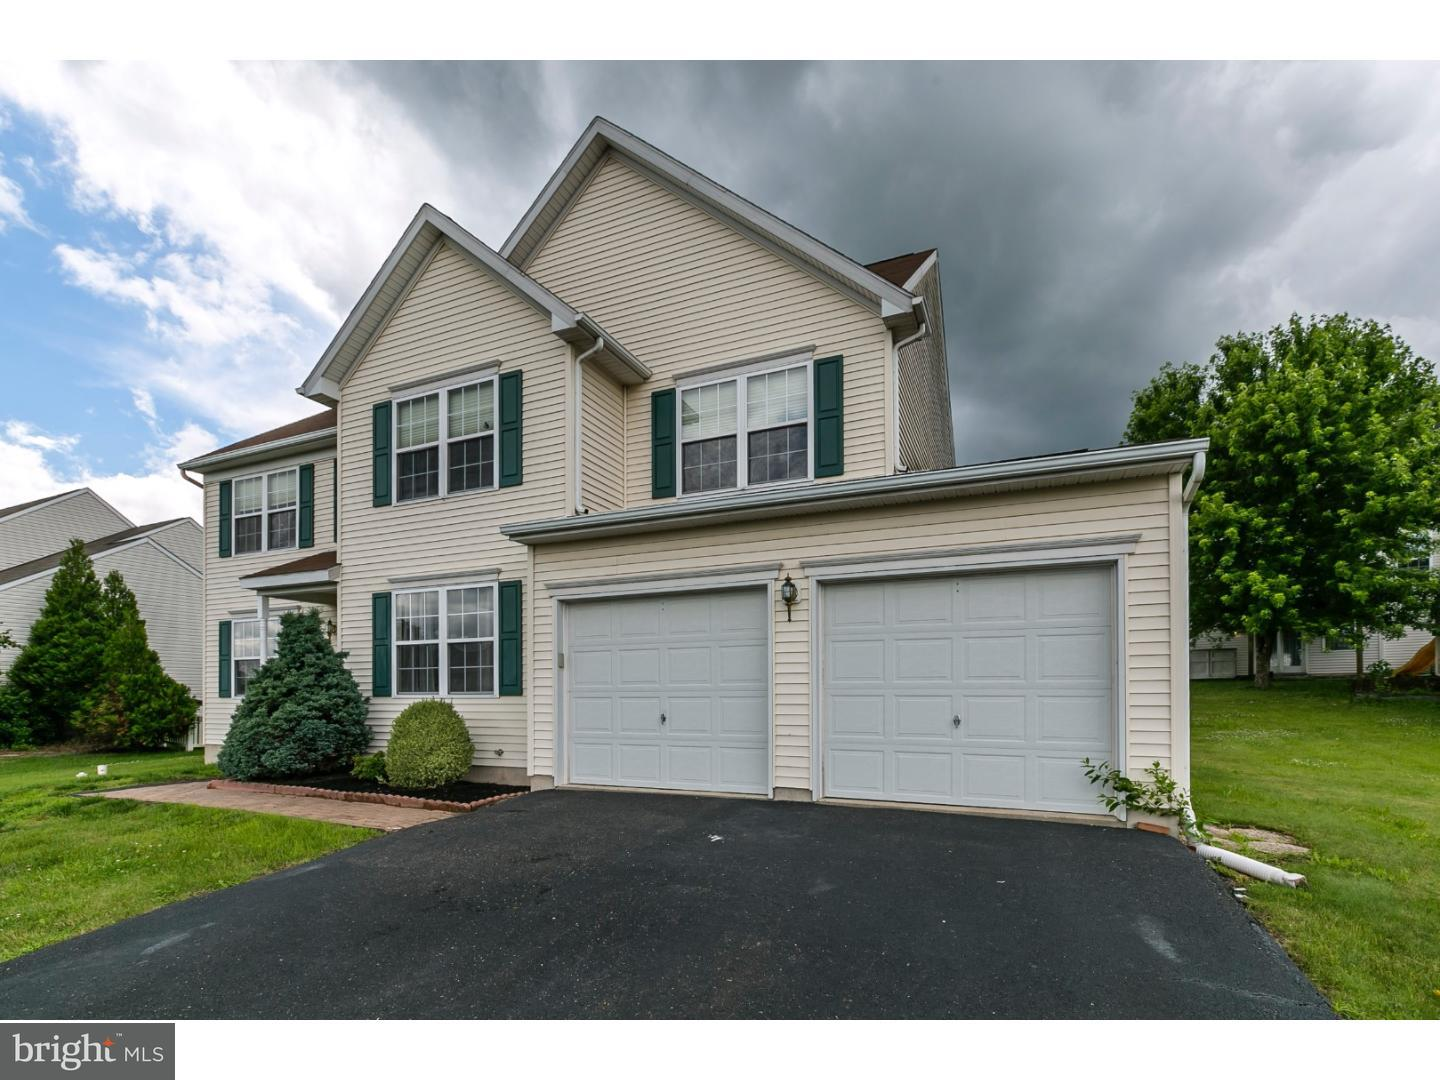 1293 MEADOWVIEW DR, POTTSTOWN - Listed at $269,900, POTTSTOWN, MONTGOMERY County